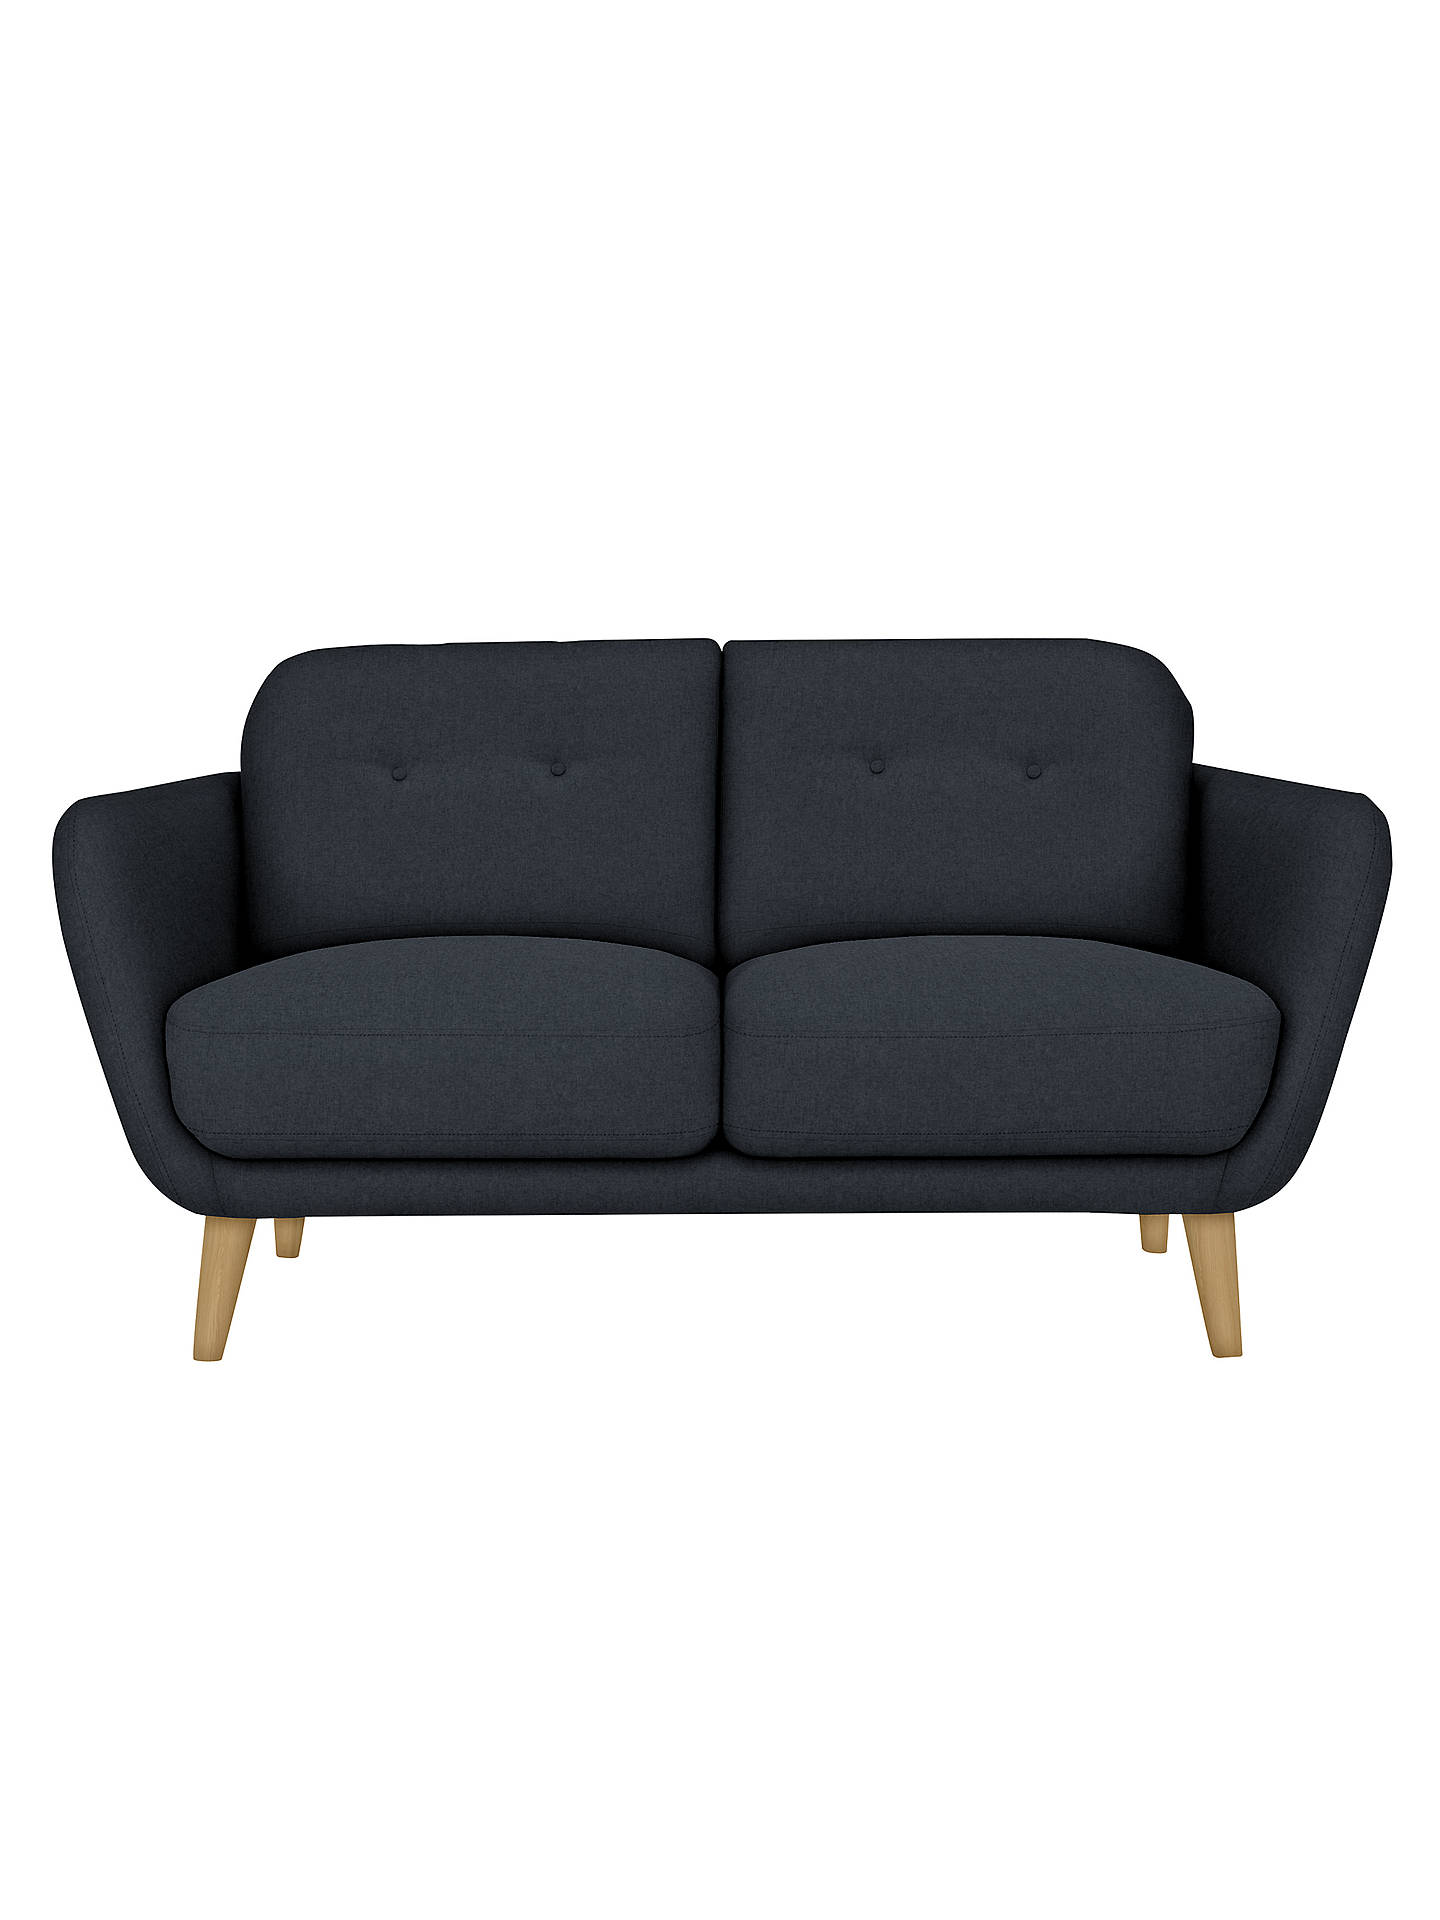 BuyHouse by John Lewis Arlo Small 2 Seater Sofa, Light Leg, Dylan Charcoal Online at johnlewis.com